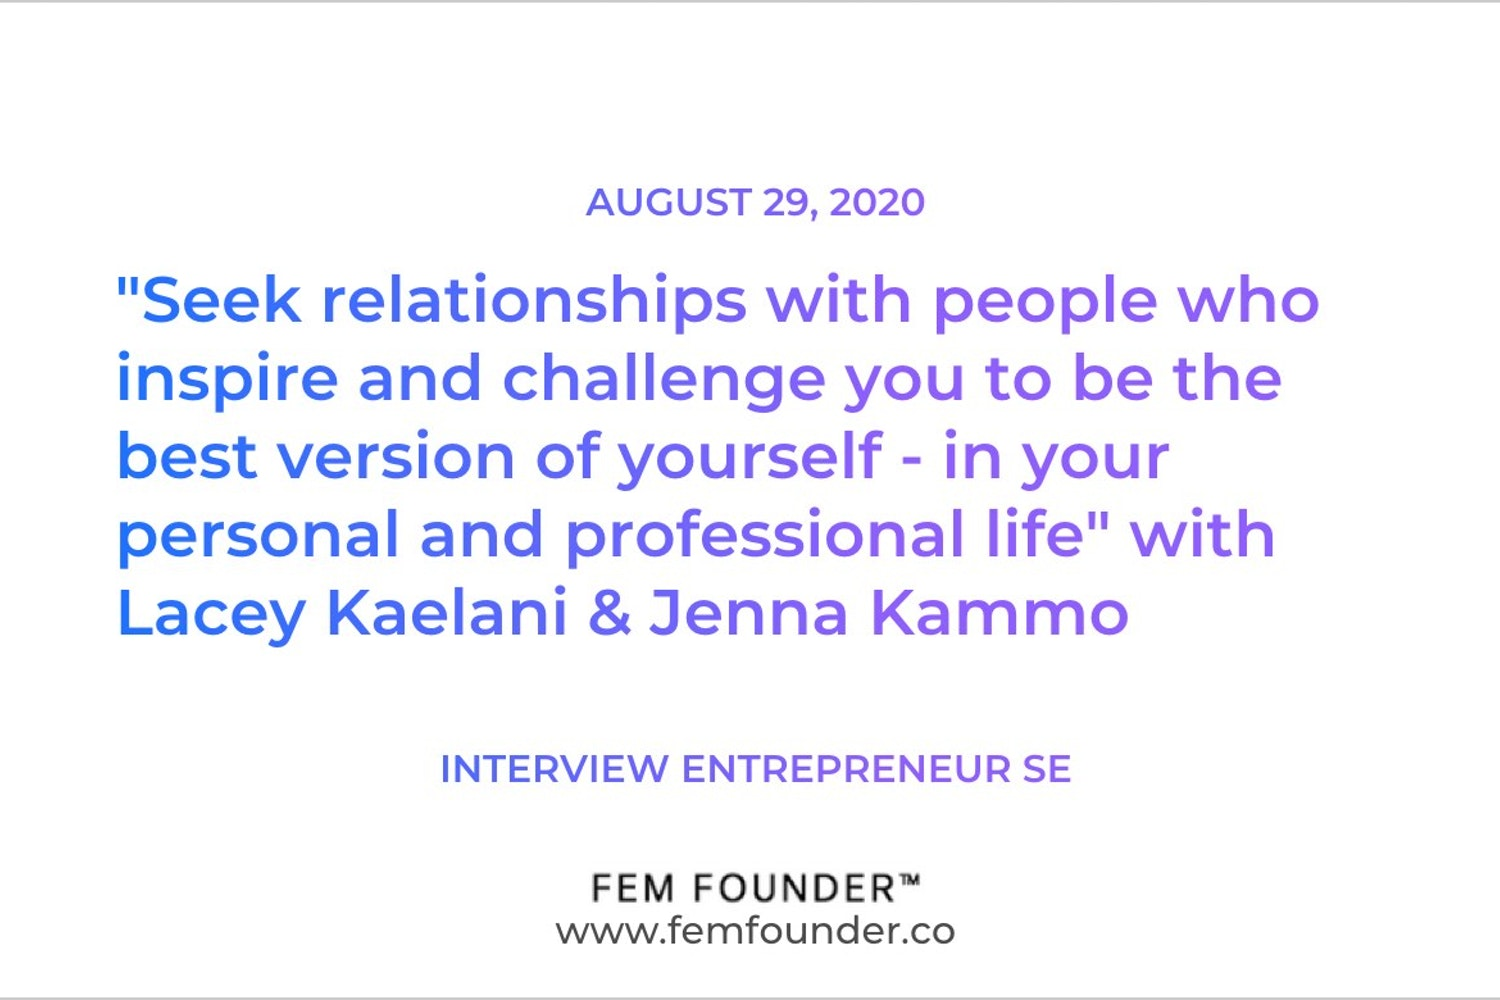 """Cover Image for """"Seek relationships with people who inspire and challenge you to be the best version of yourself - in your personal and professional life"""" with Lacey Kaelani & Jenna Kammo"""